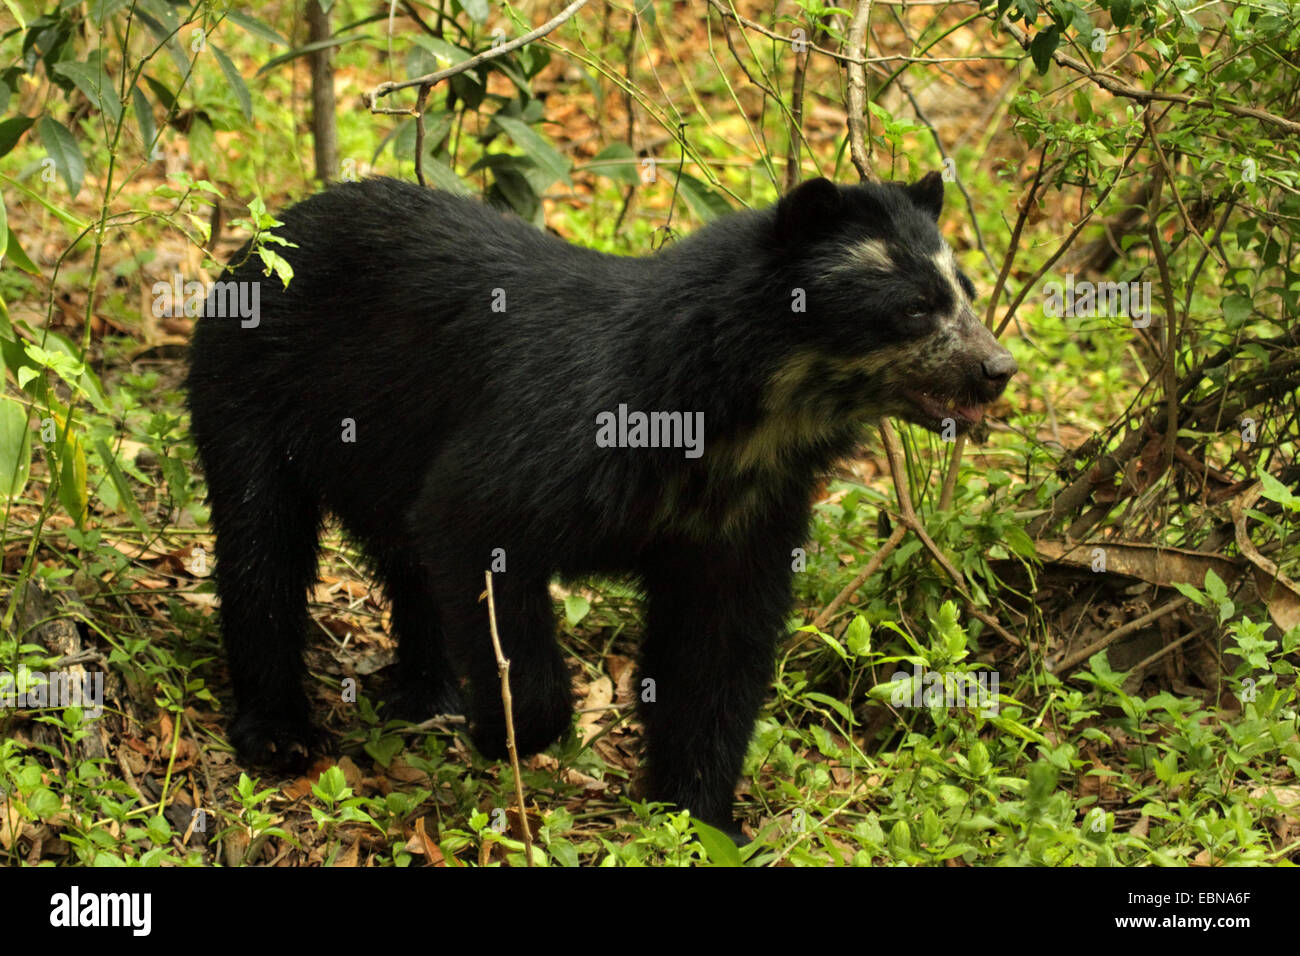 Spectacled bear, Andean bear (Tremarctos ornatus), walking in the forest, Peru, Lambayeque, Reserva Chaparri Stock Photo